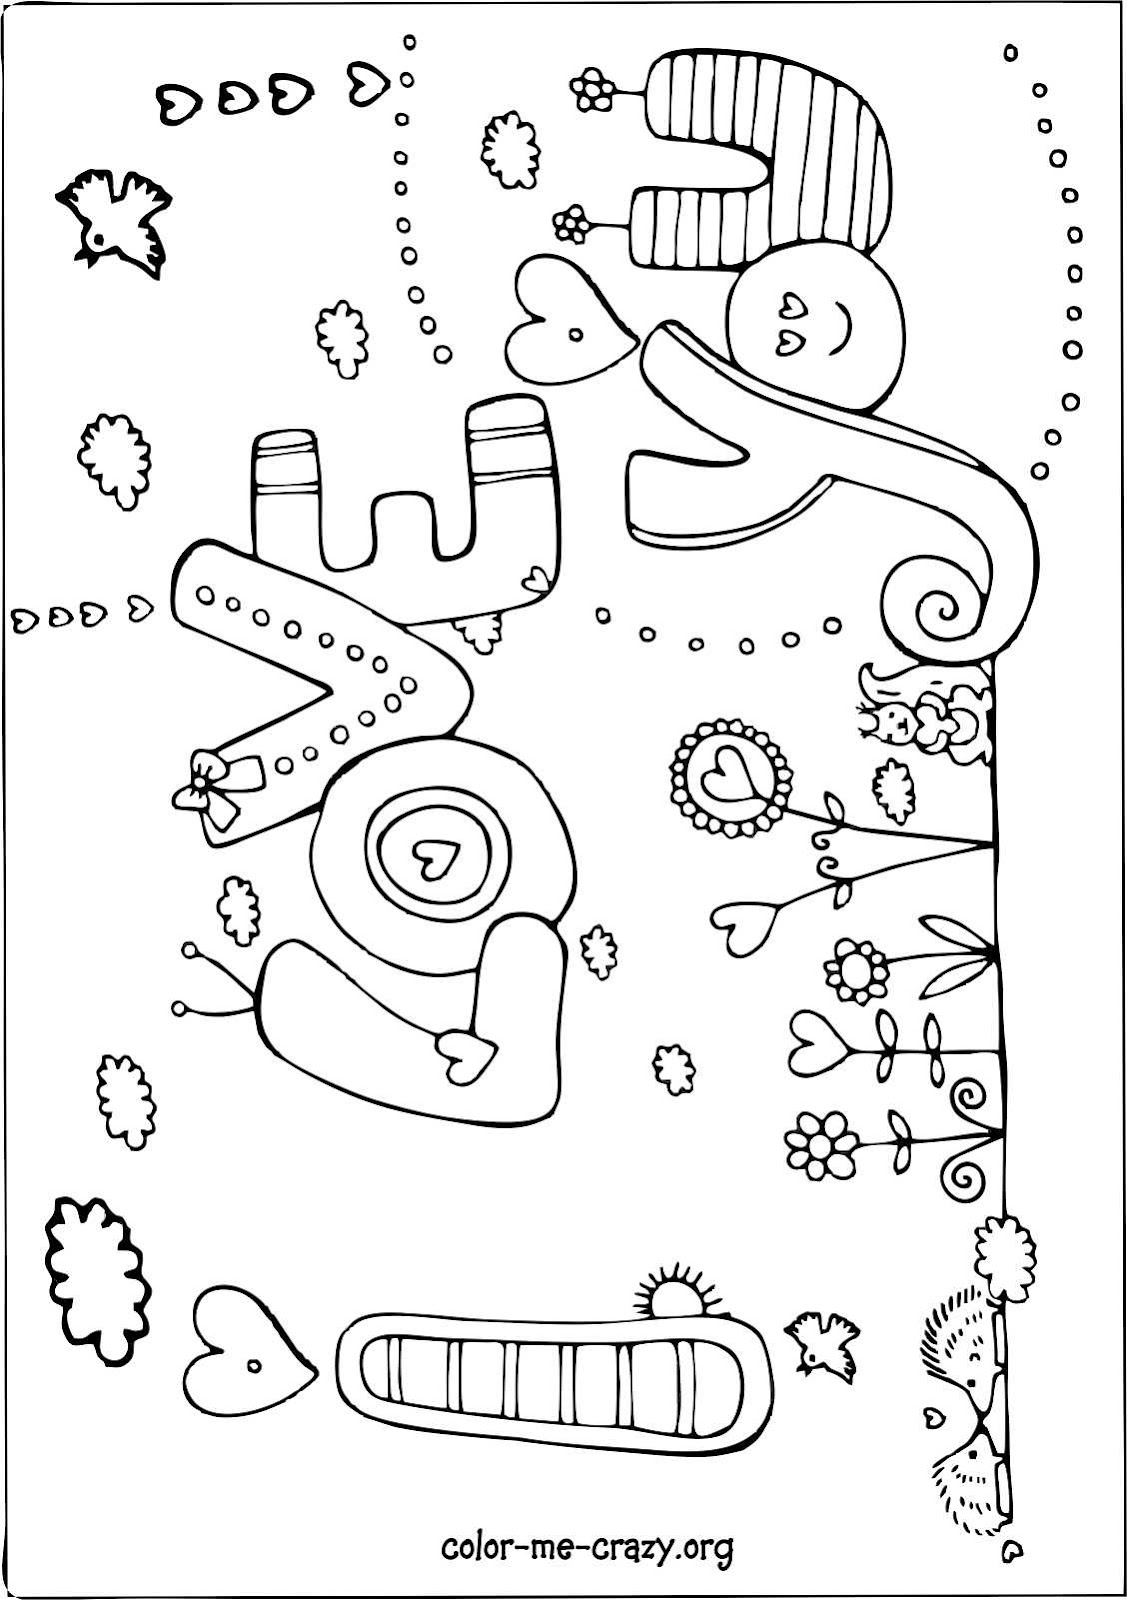 valentines coloring pages printable colormecrazyorg valentine coloring pages coloring printable pages valentines